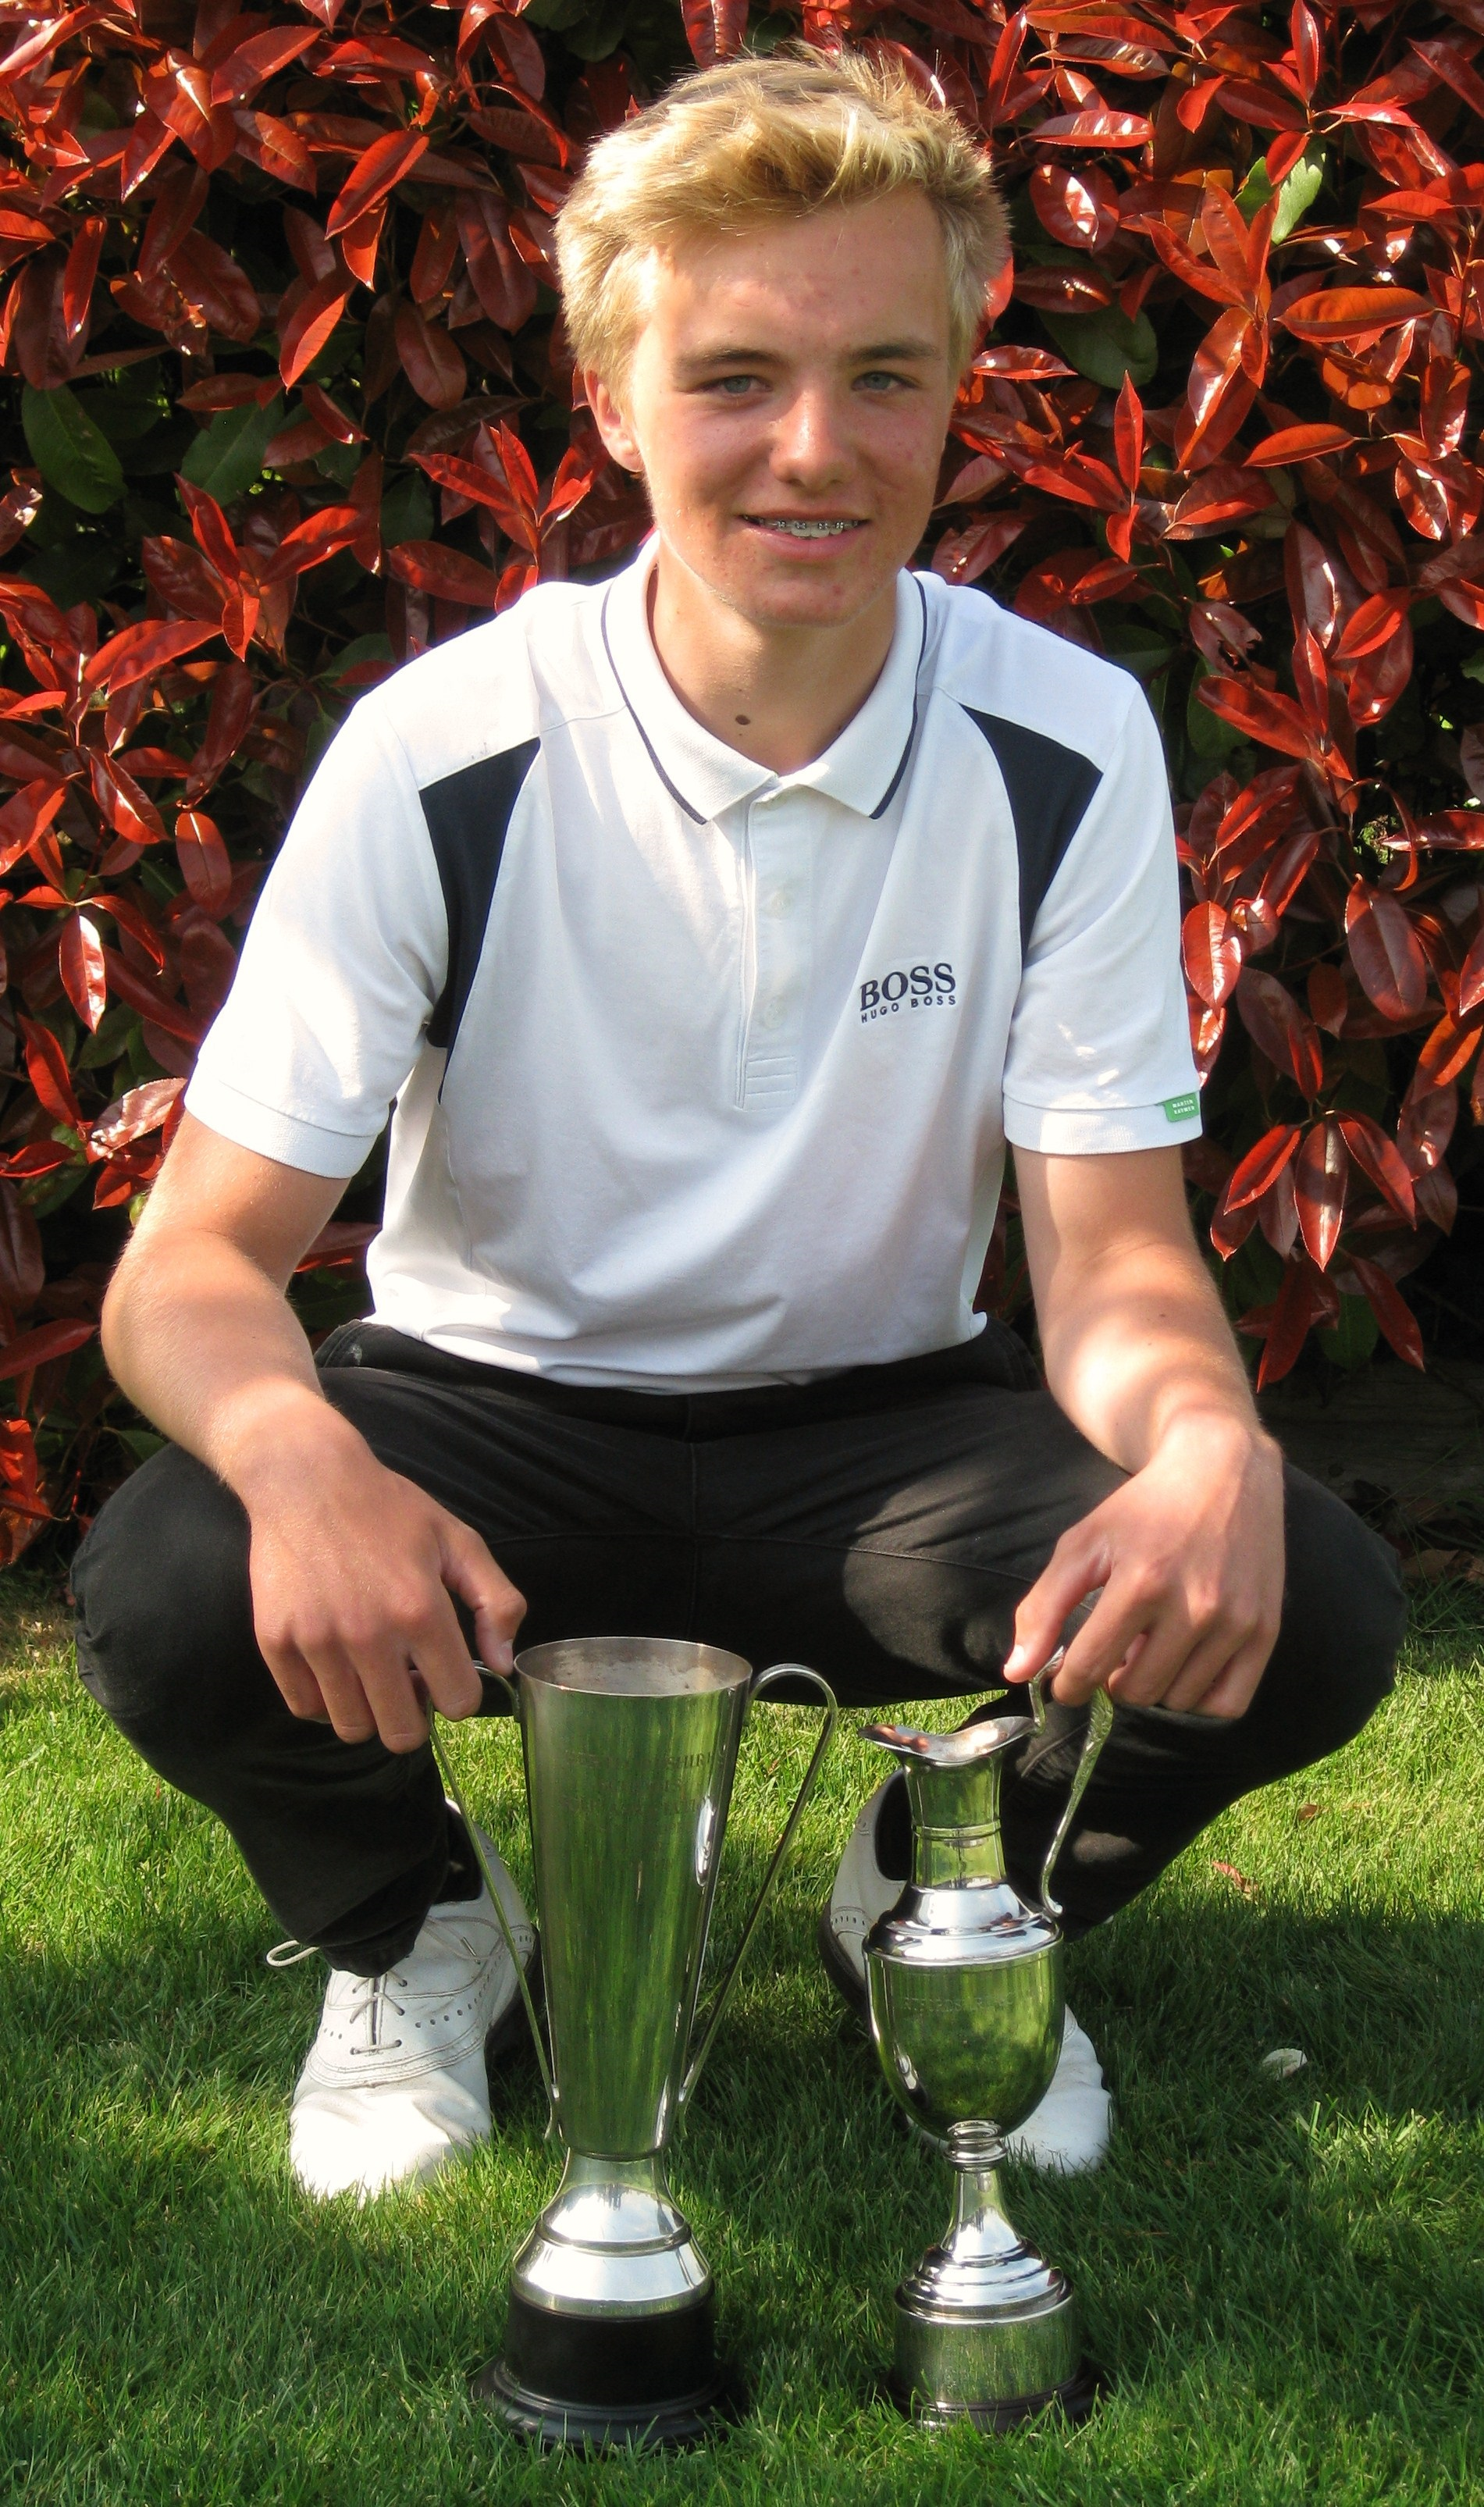 Junior golfers at Redbourn Golf Club named Hertfordshire county captains  From St Albans  amp  Harpenden Review  St Albans Review